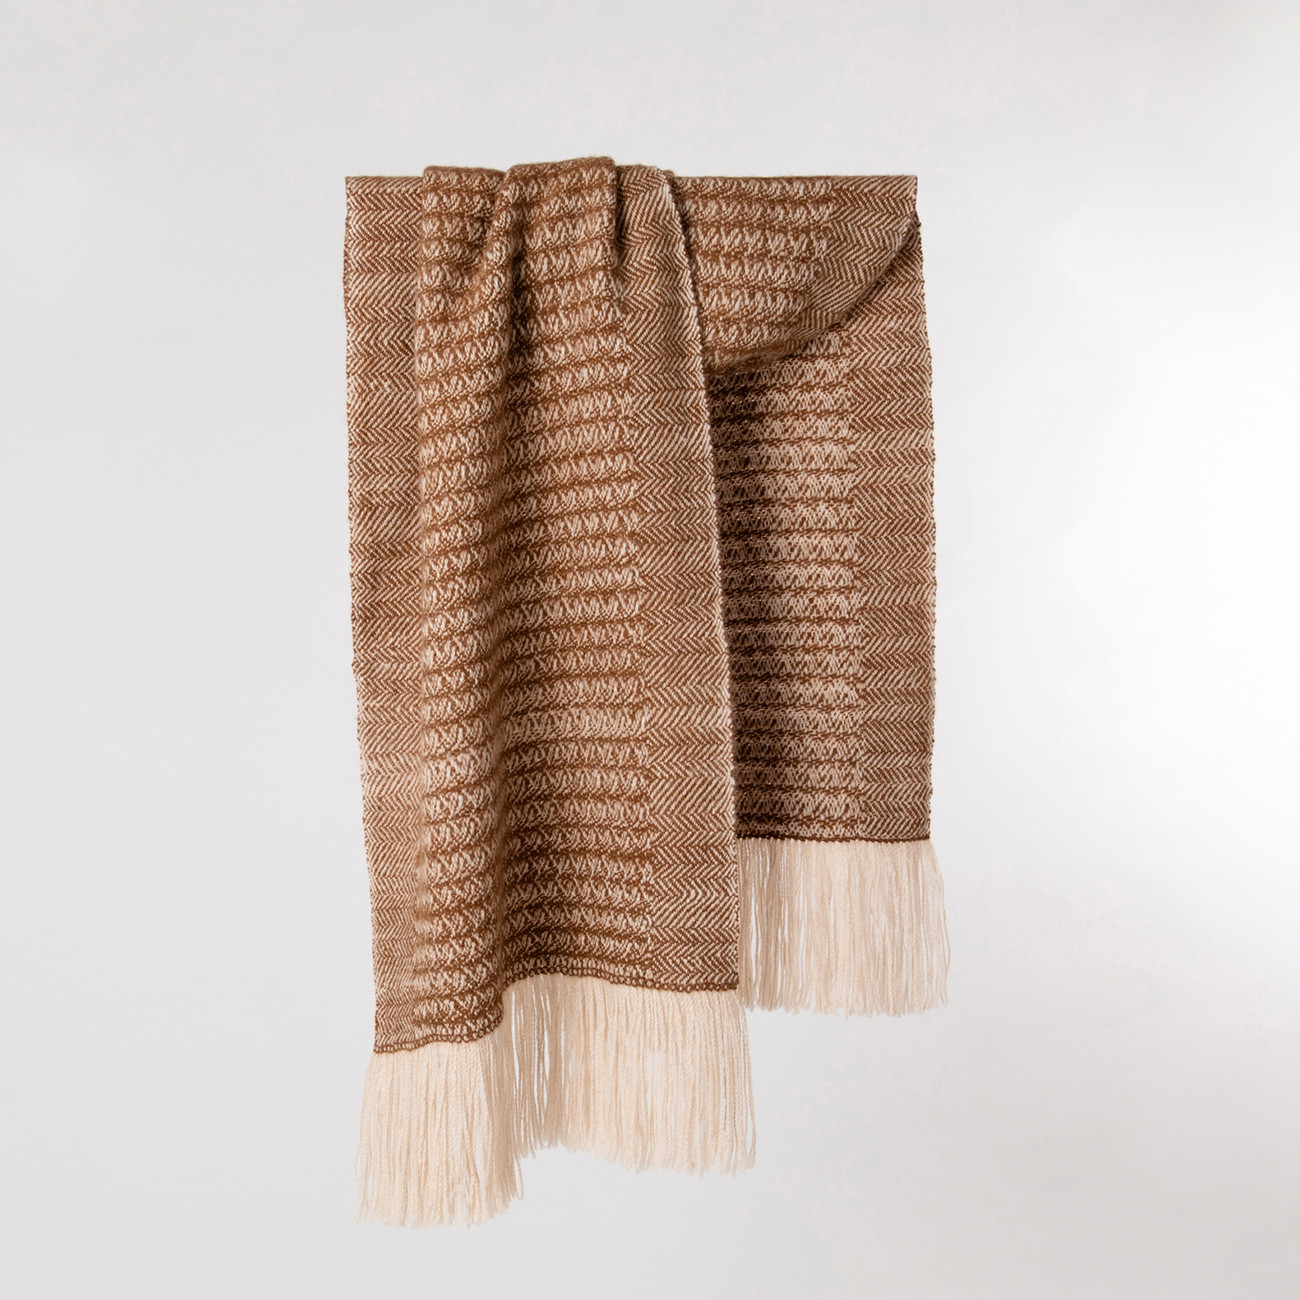 Handwoven Sycamore Wide Scarf - Natural Caramel and Cream Alpaca - 0